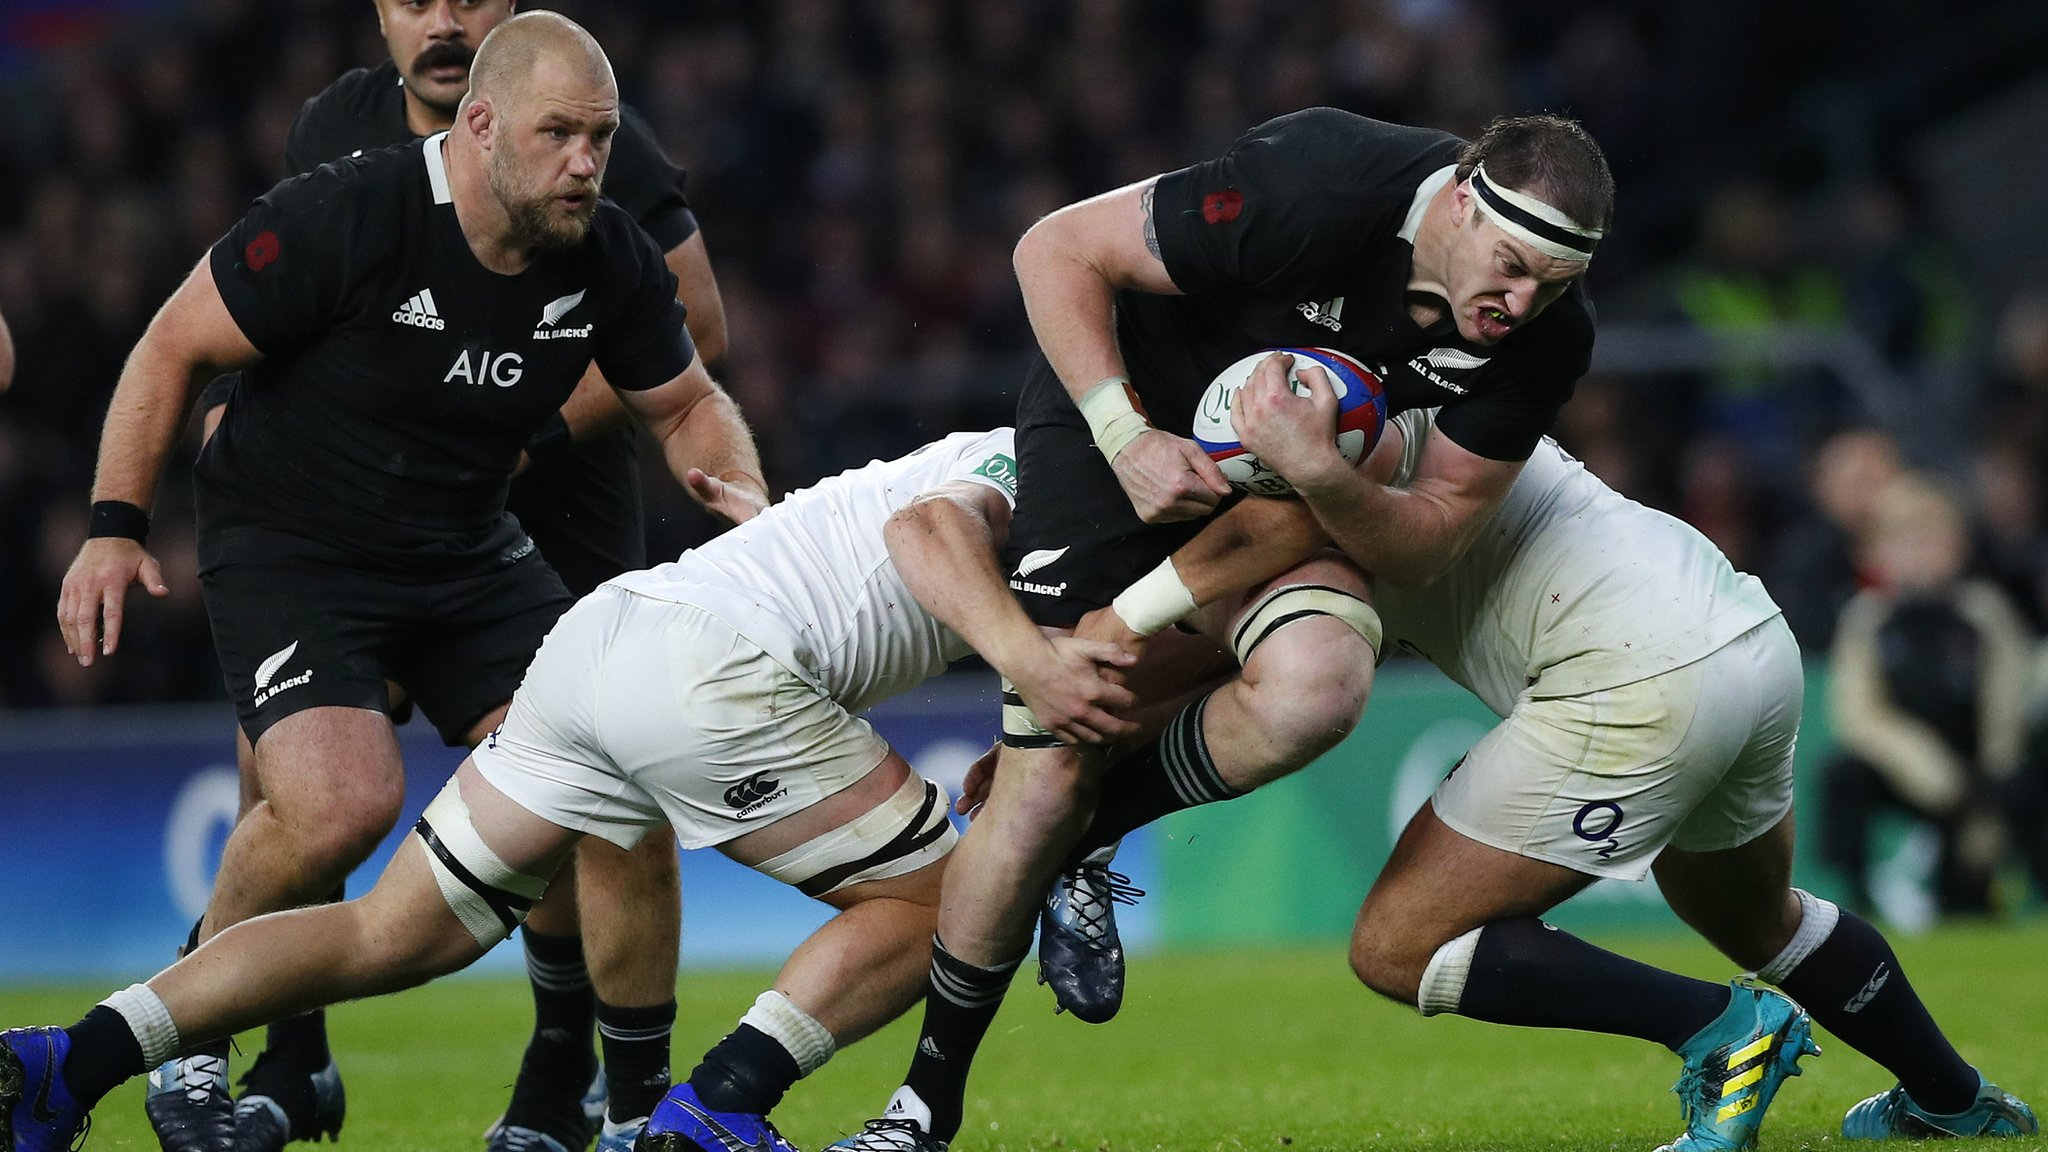 Nations Championship: World Rugby calls on Six Nations unions to consider good of global game